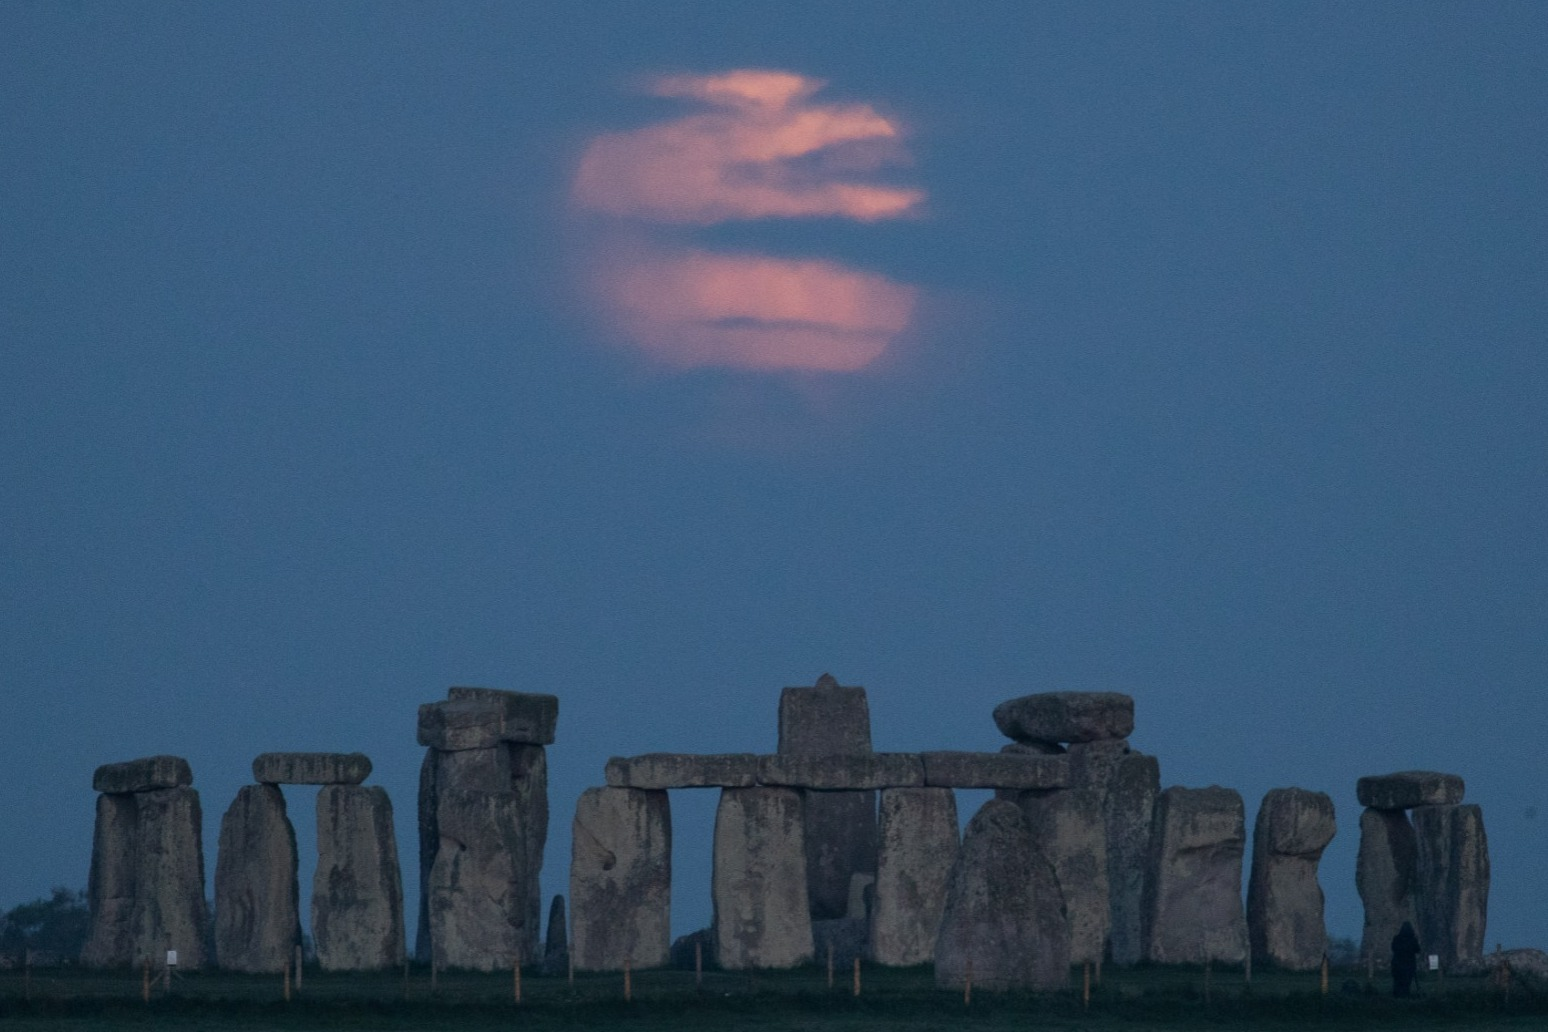 Supermoon obscured by clouds as it graces night sky